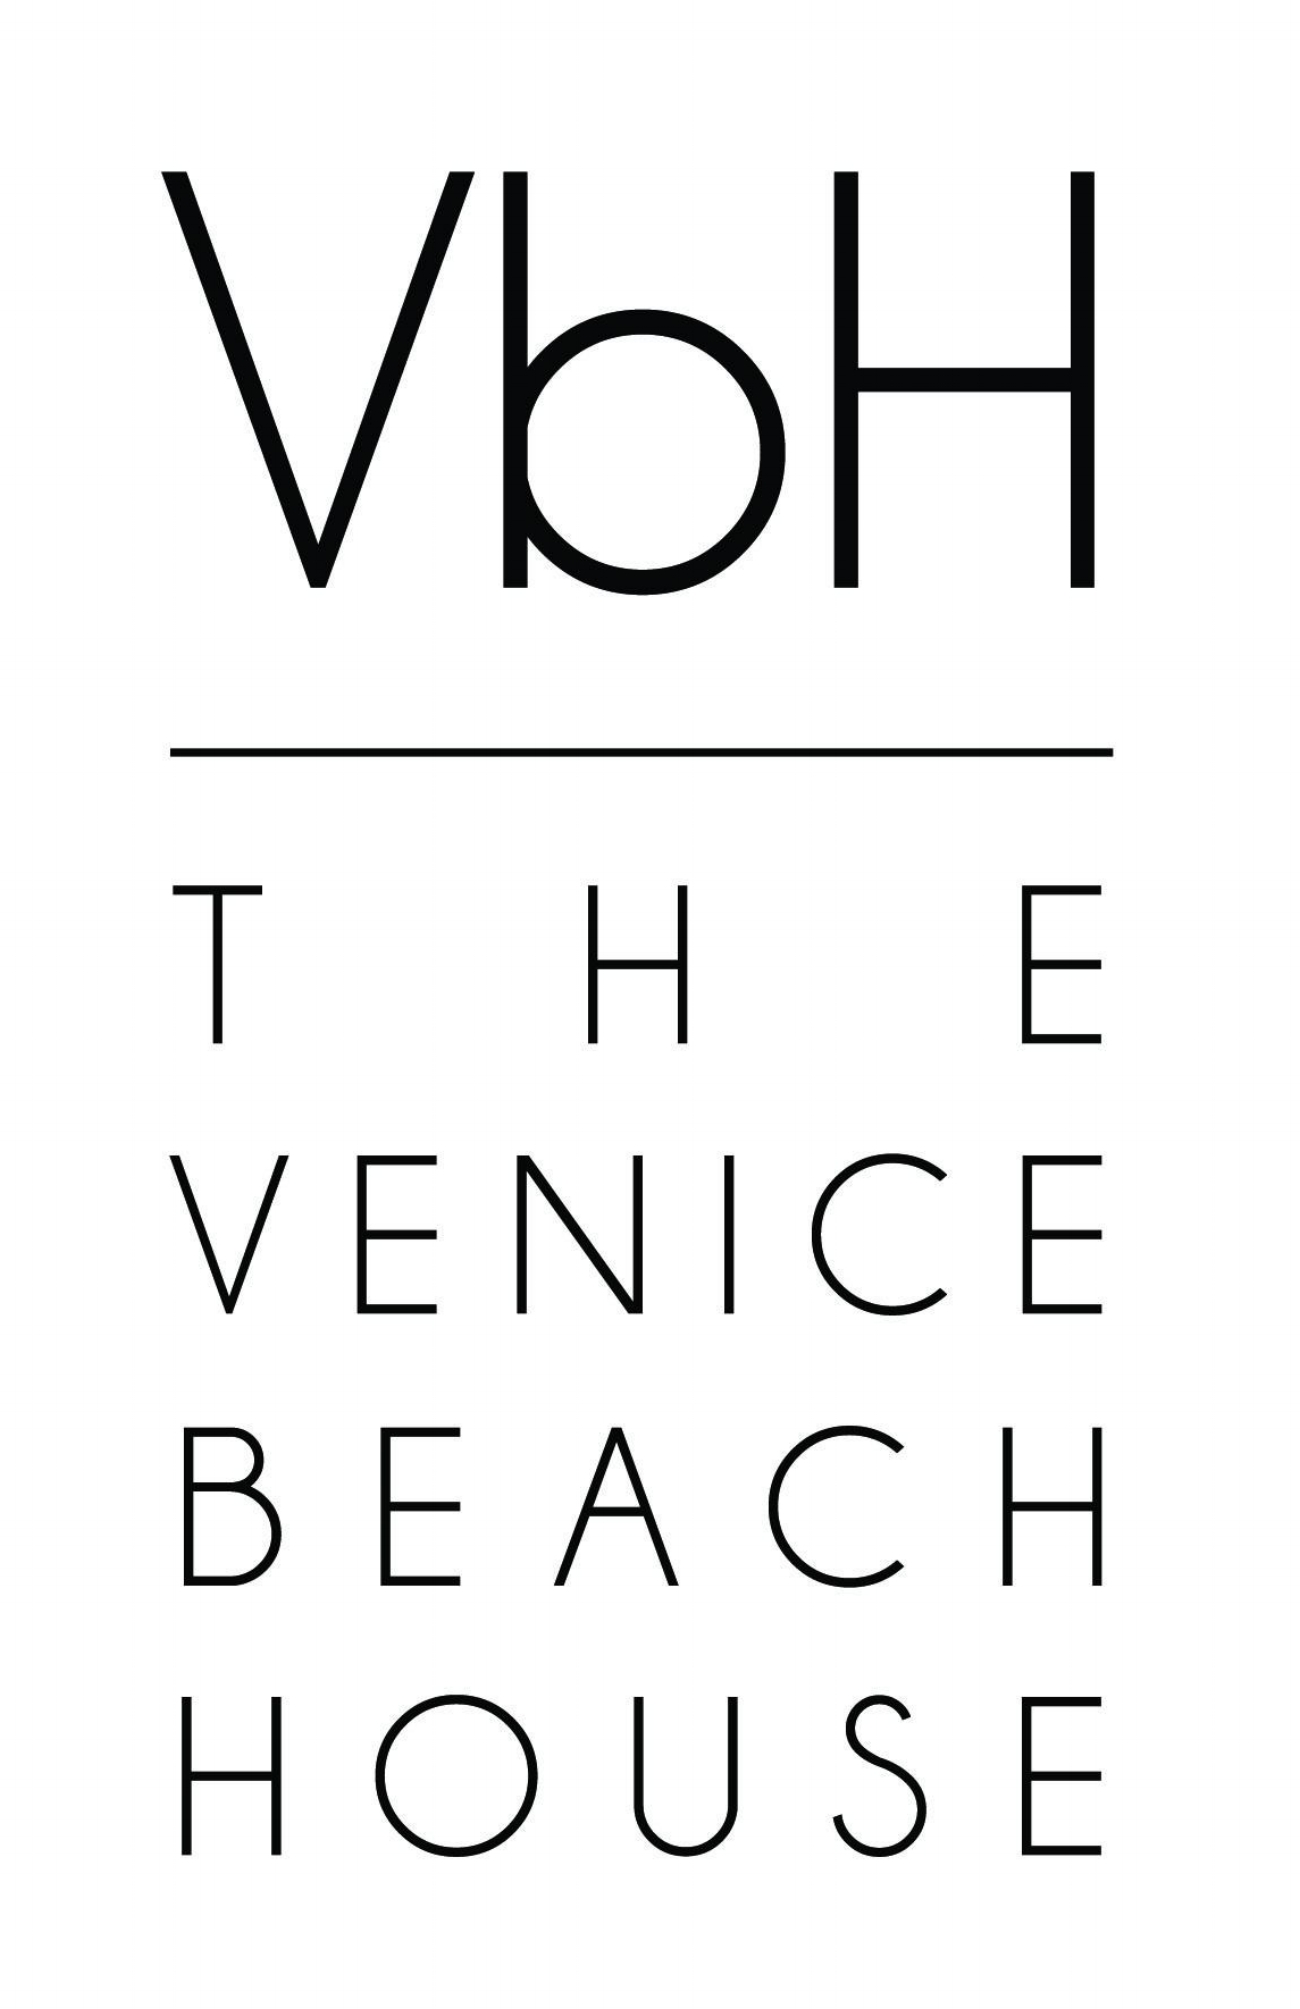 Venice Beach Hotel | Hotels in Venice Beach, CA | The Venice Beach House